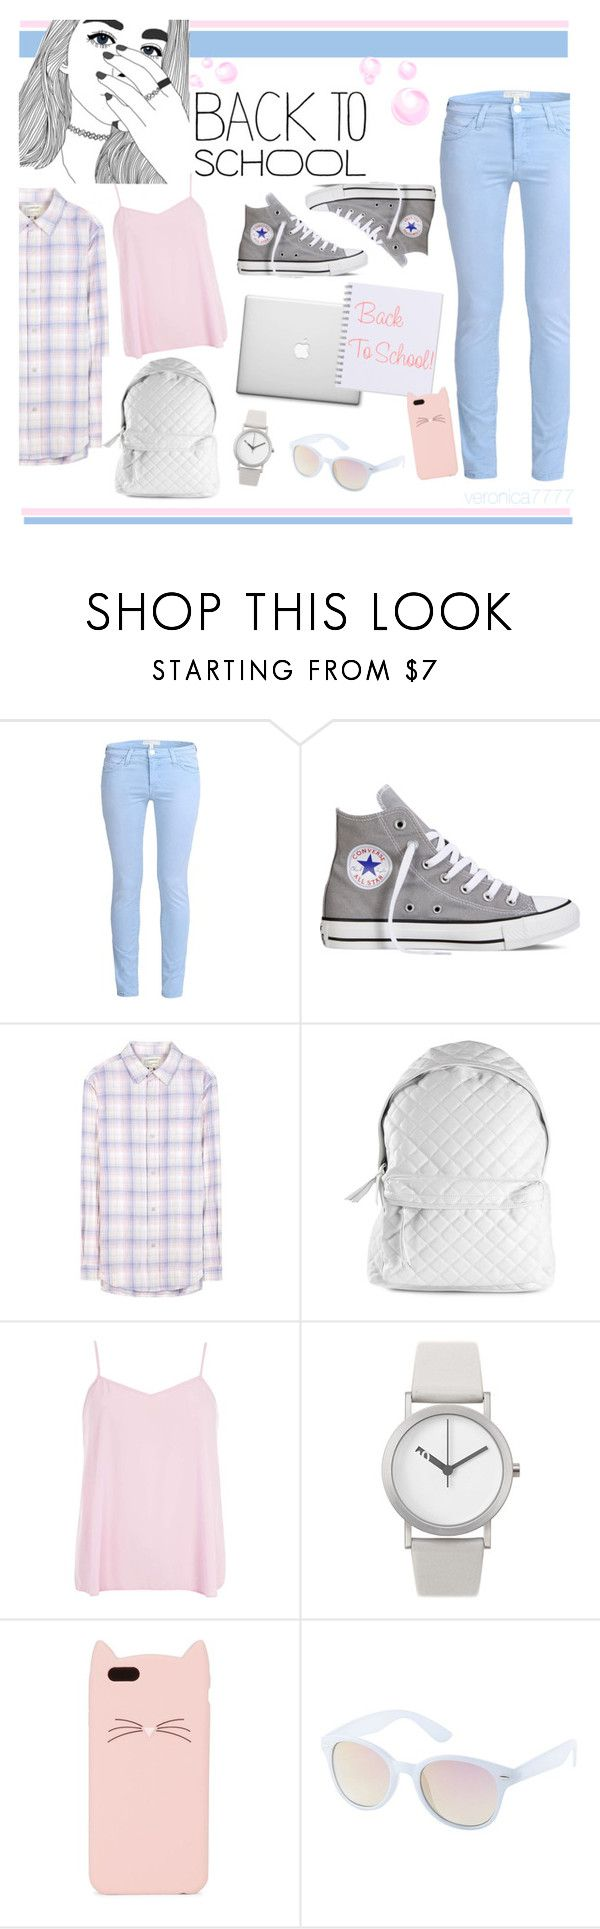 """back to school"" by veronica7777 ❤ liked on Polyvore featuring Current/Elliott, Converse, Stampd, Dorothy Perkins, Normal Timepieces, Kate Spade and Charlotte Russe"